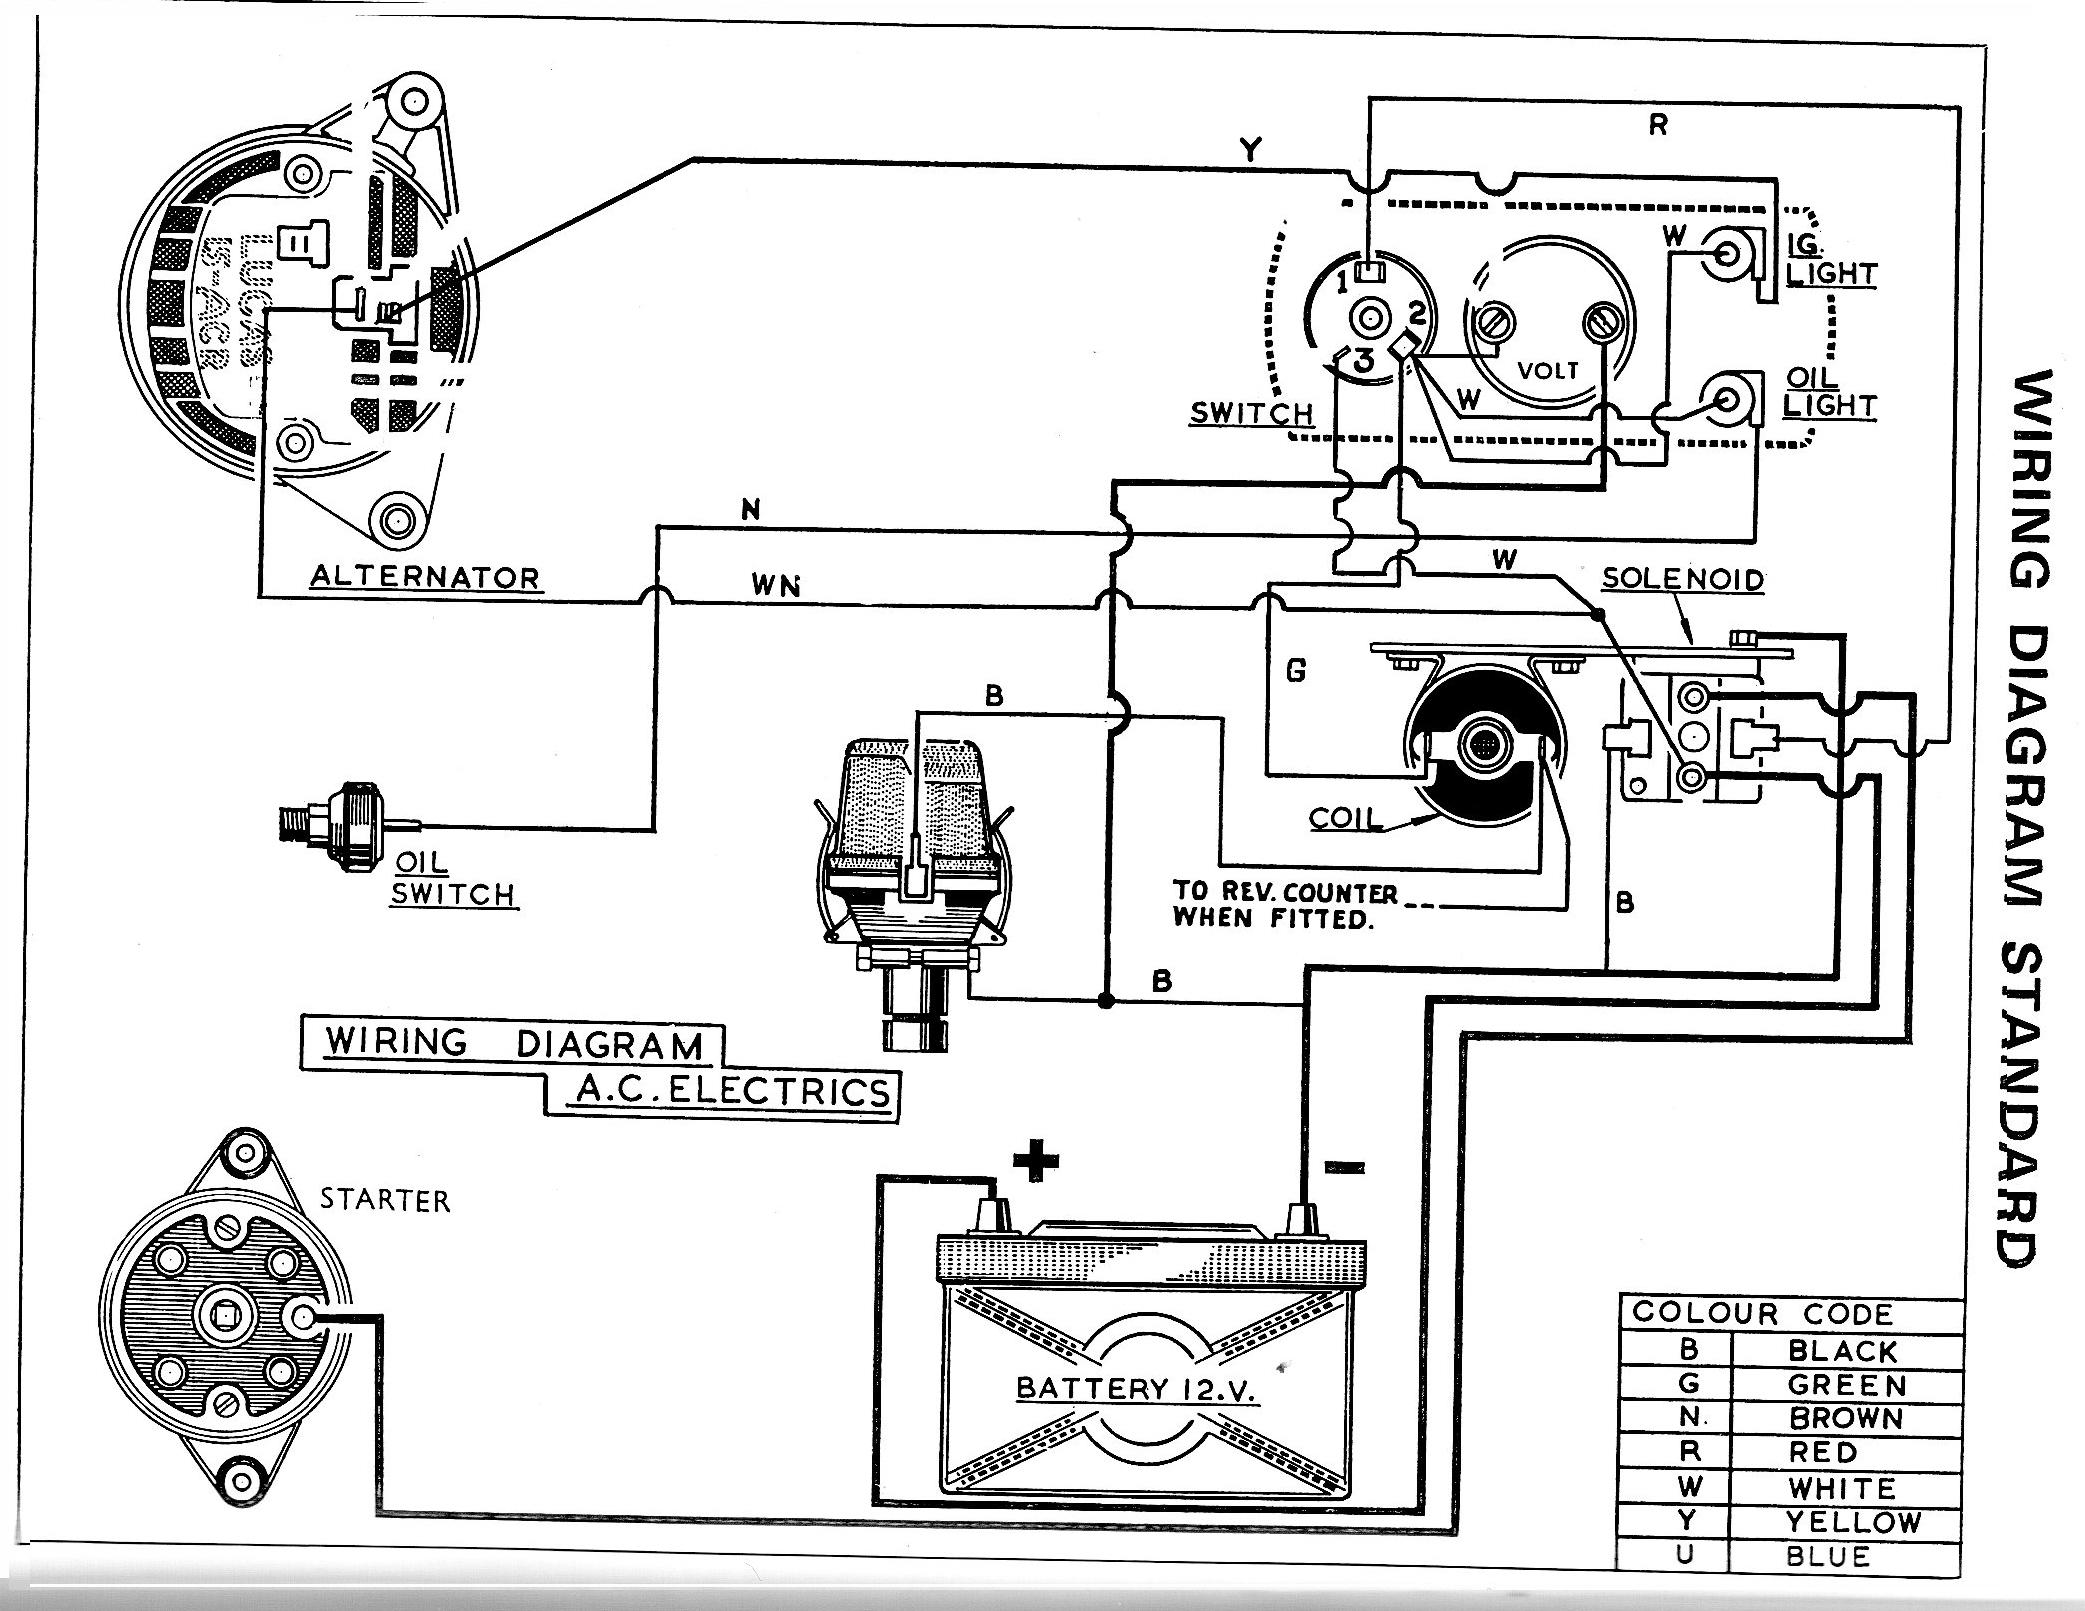 Isuzu Sel Alternator Wiring Diagram